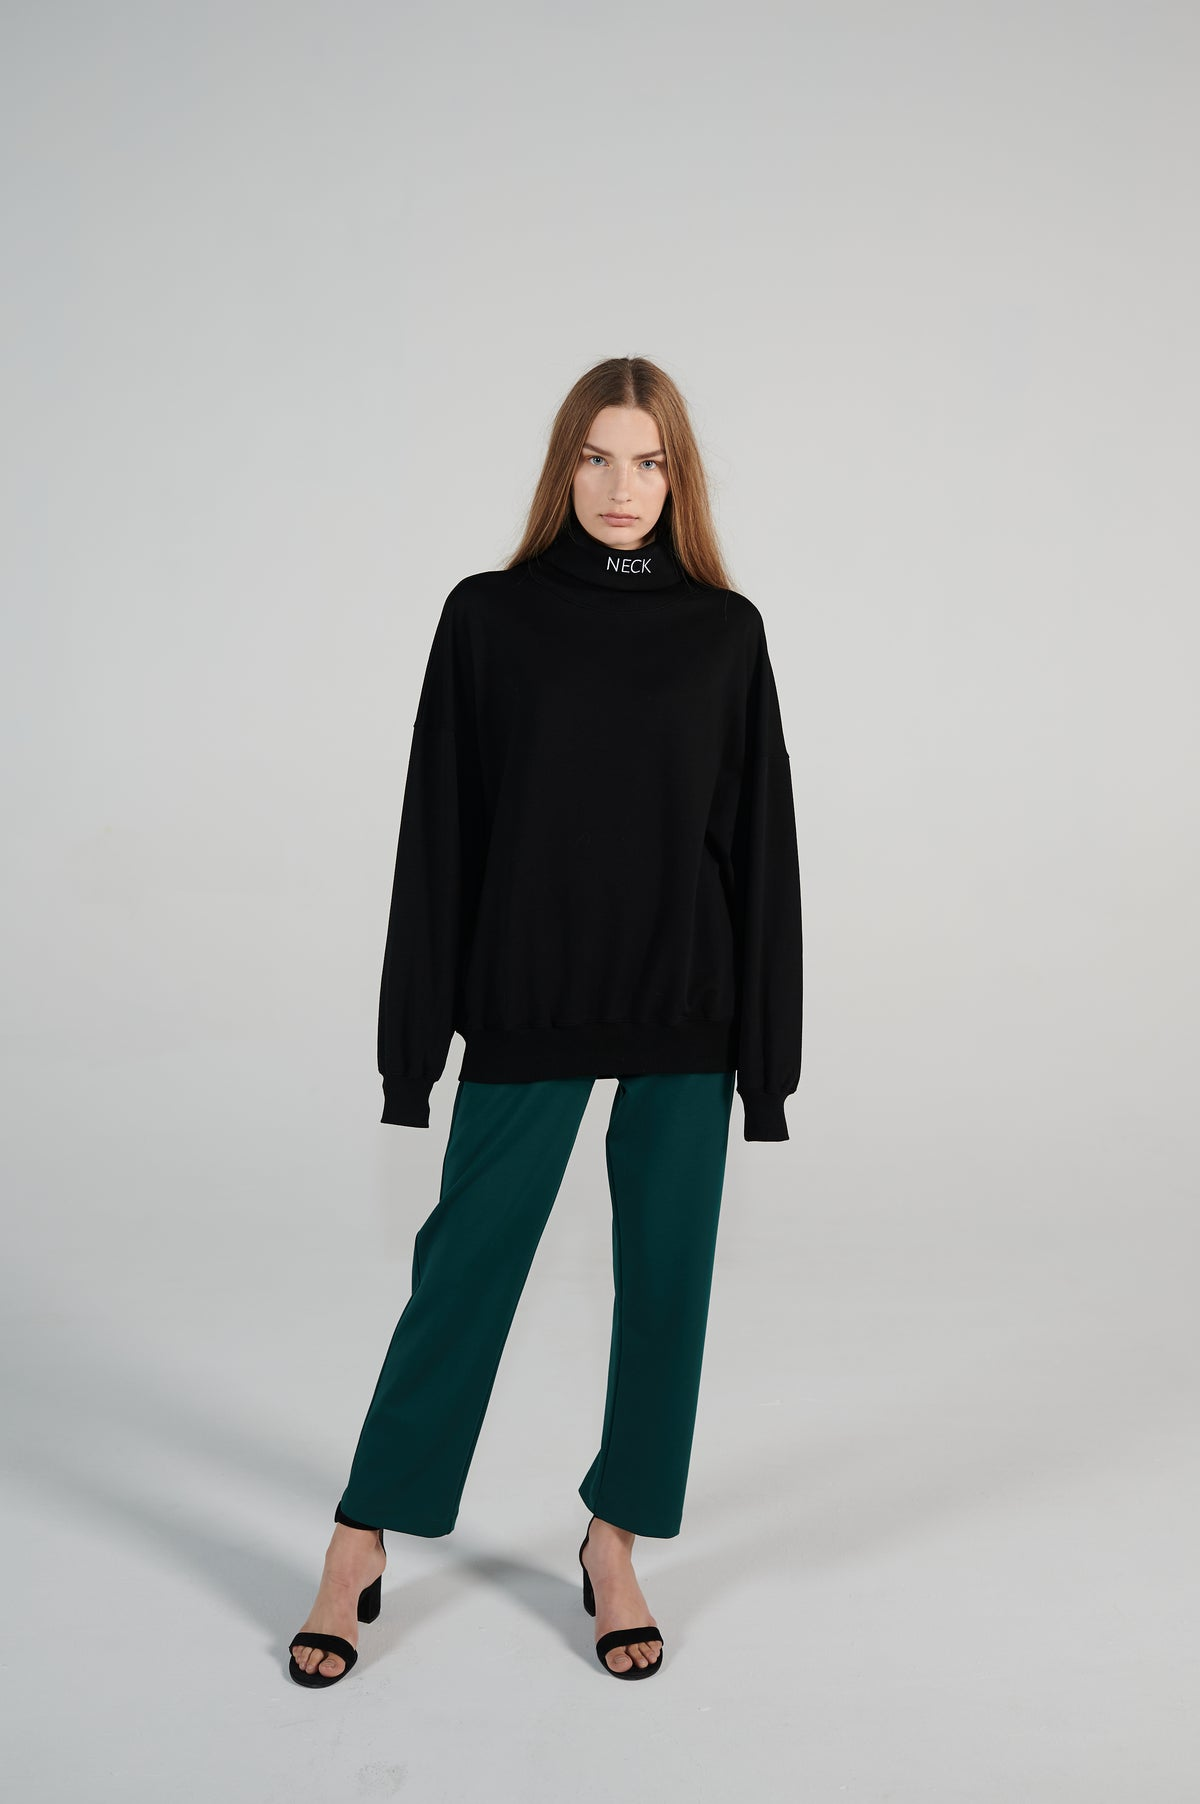 le-slap-oversize-sweater-turtleneck-black-neck-lookbook.jpg